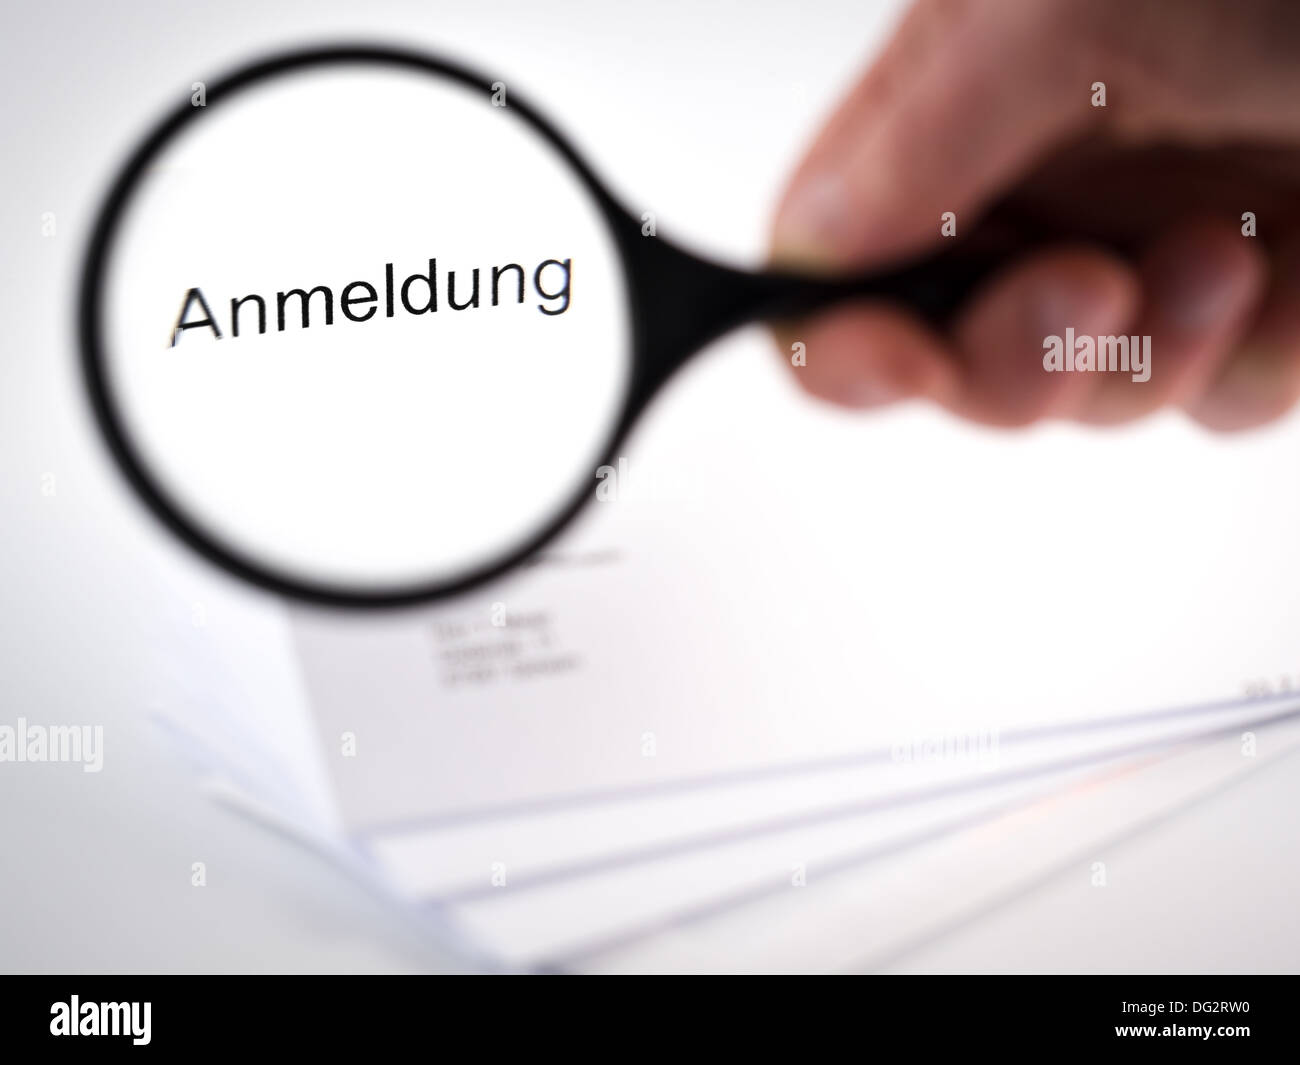 Letter with an application shown by a magnification glass - Stock Image